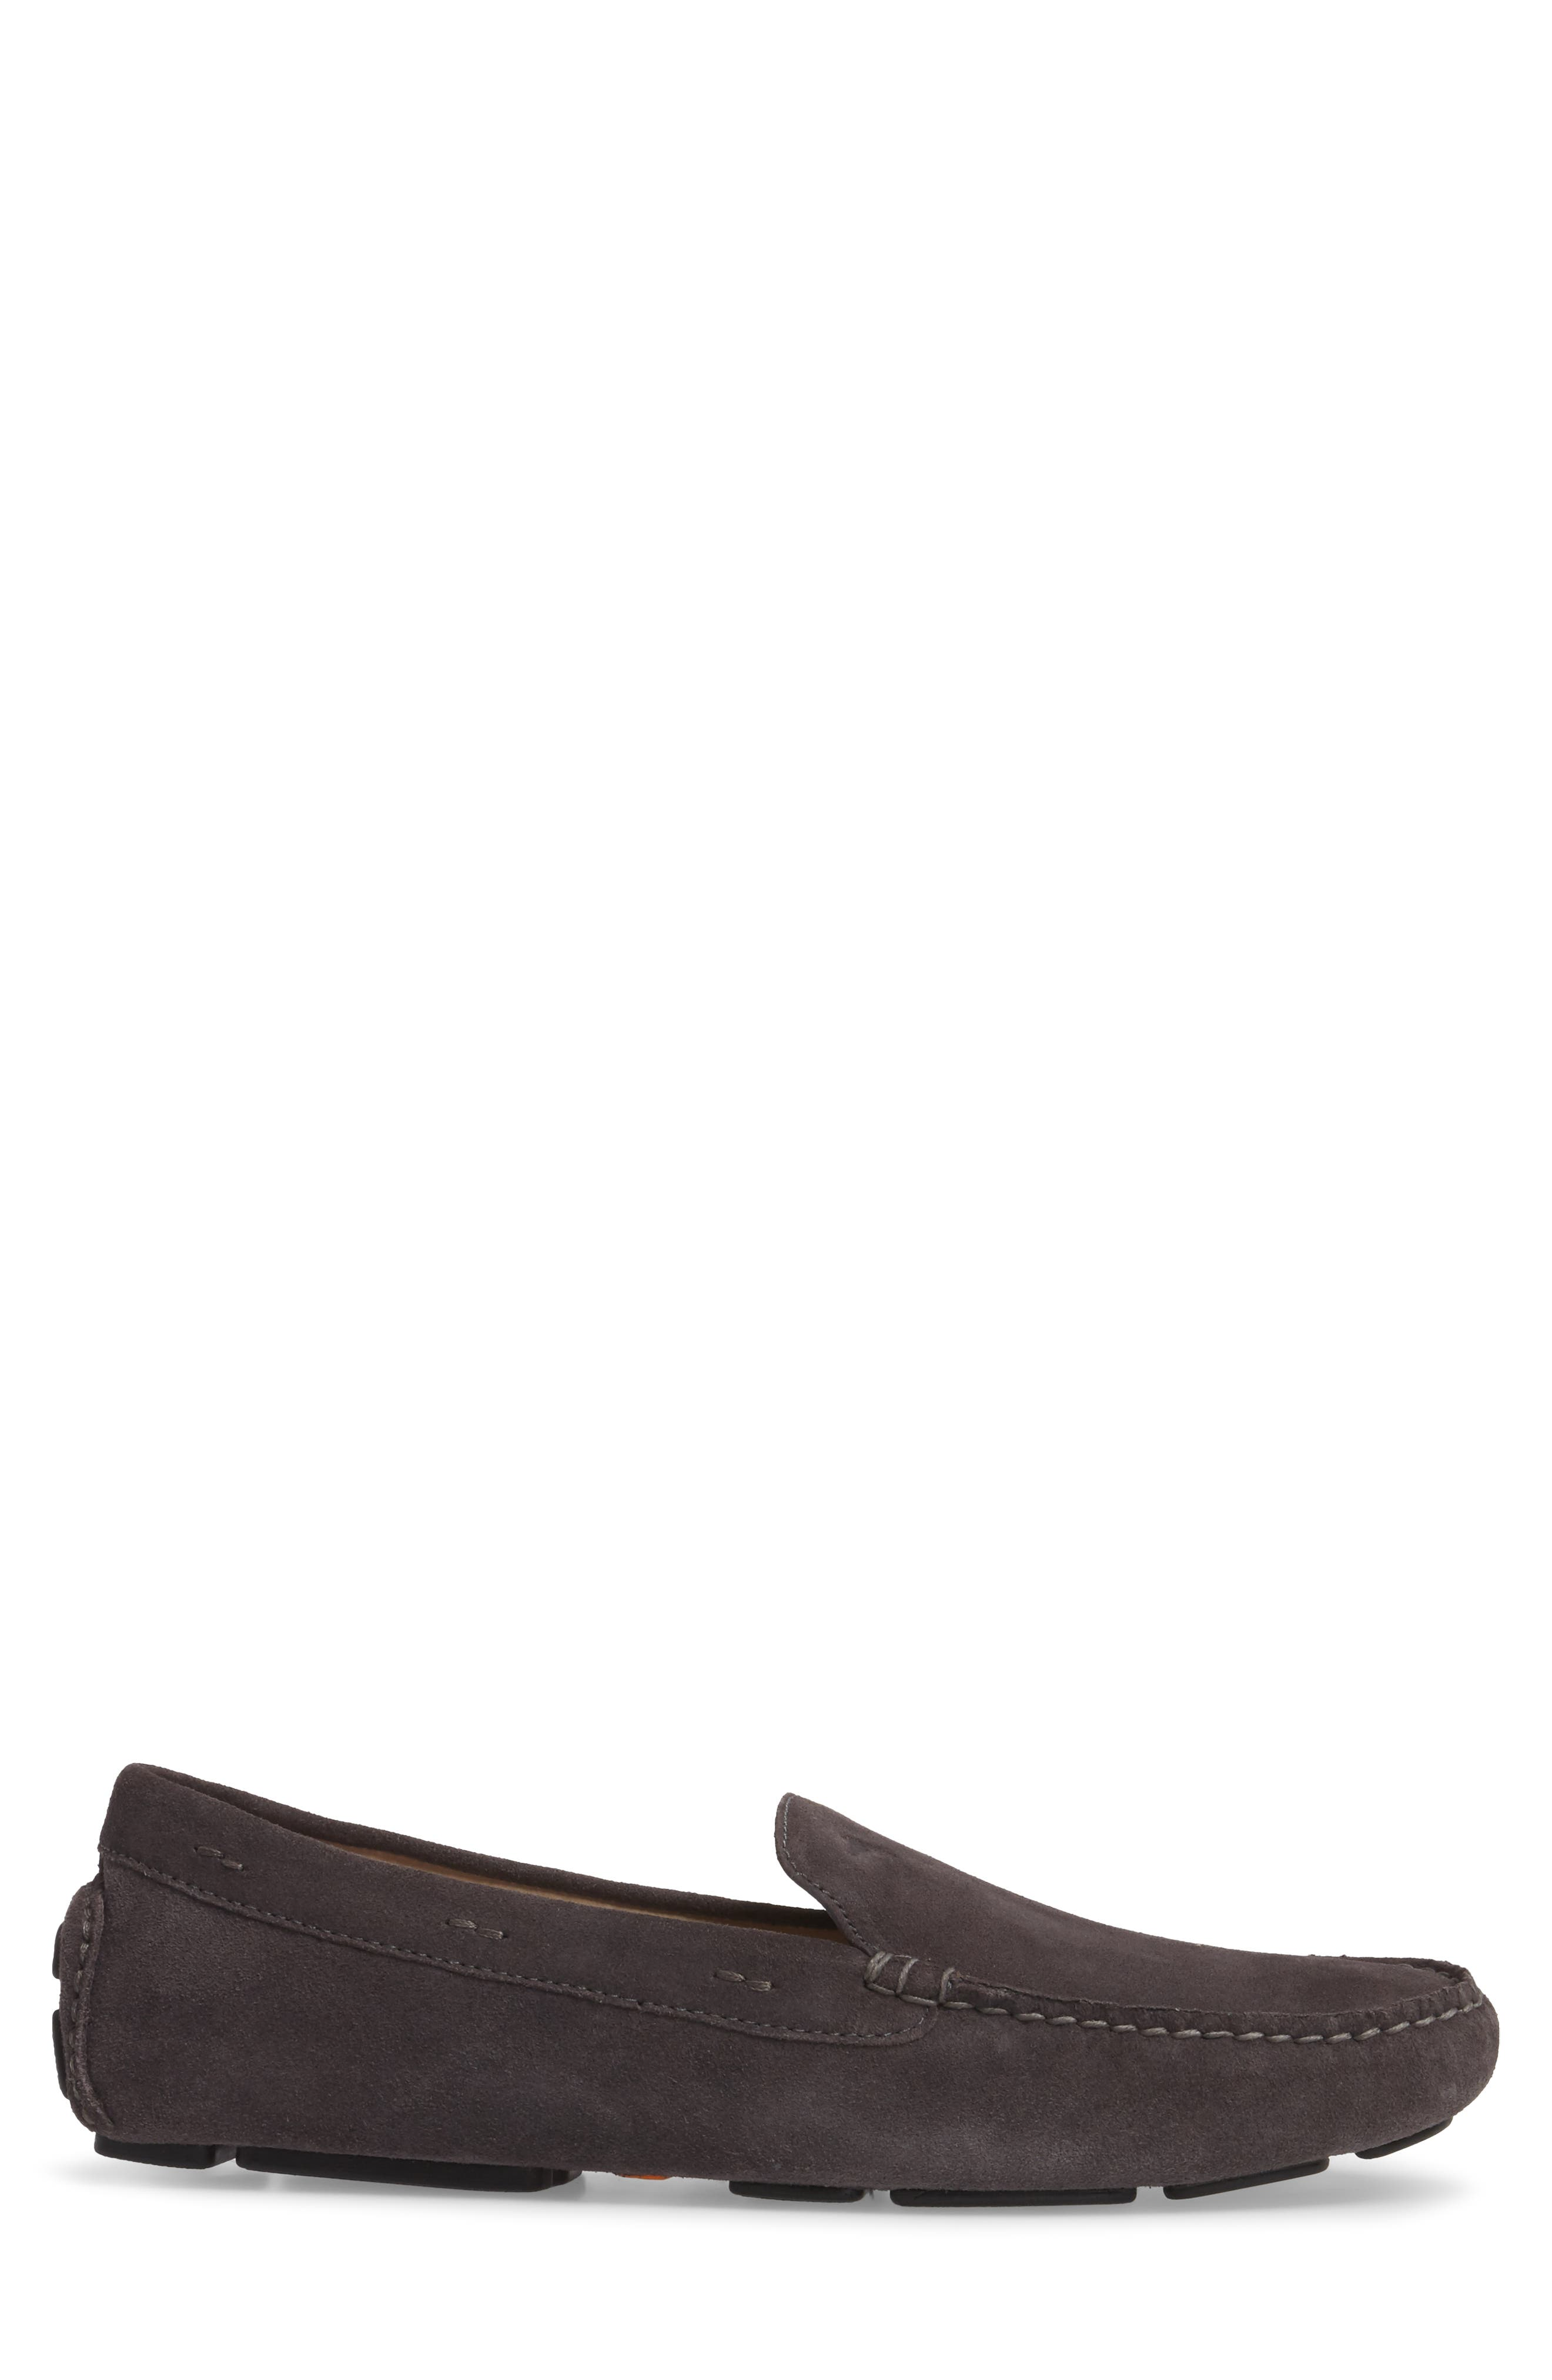 Pagota Driving Loafer,                             Alternate thumbnail 13, color,